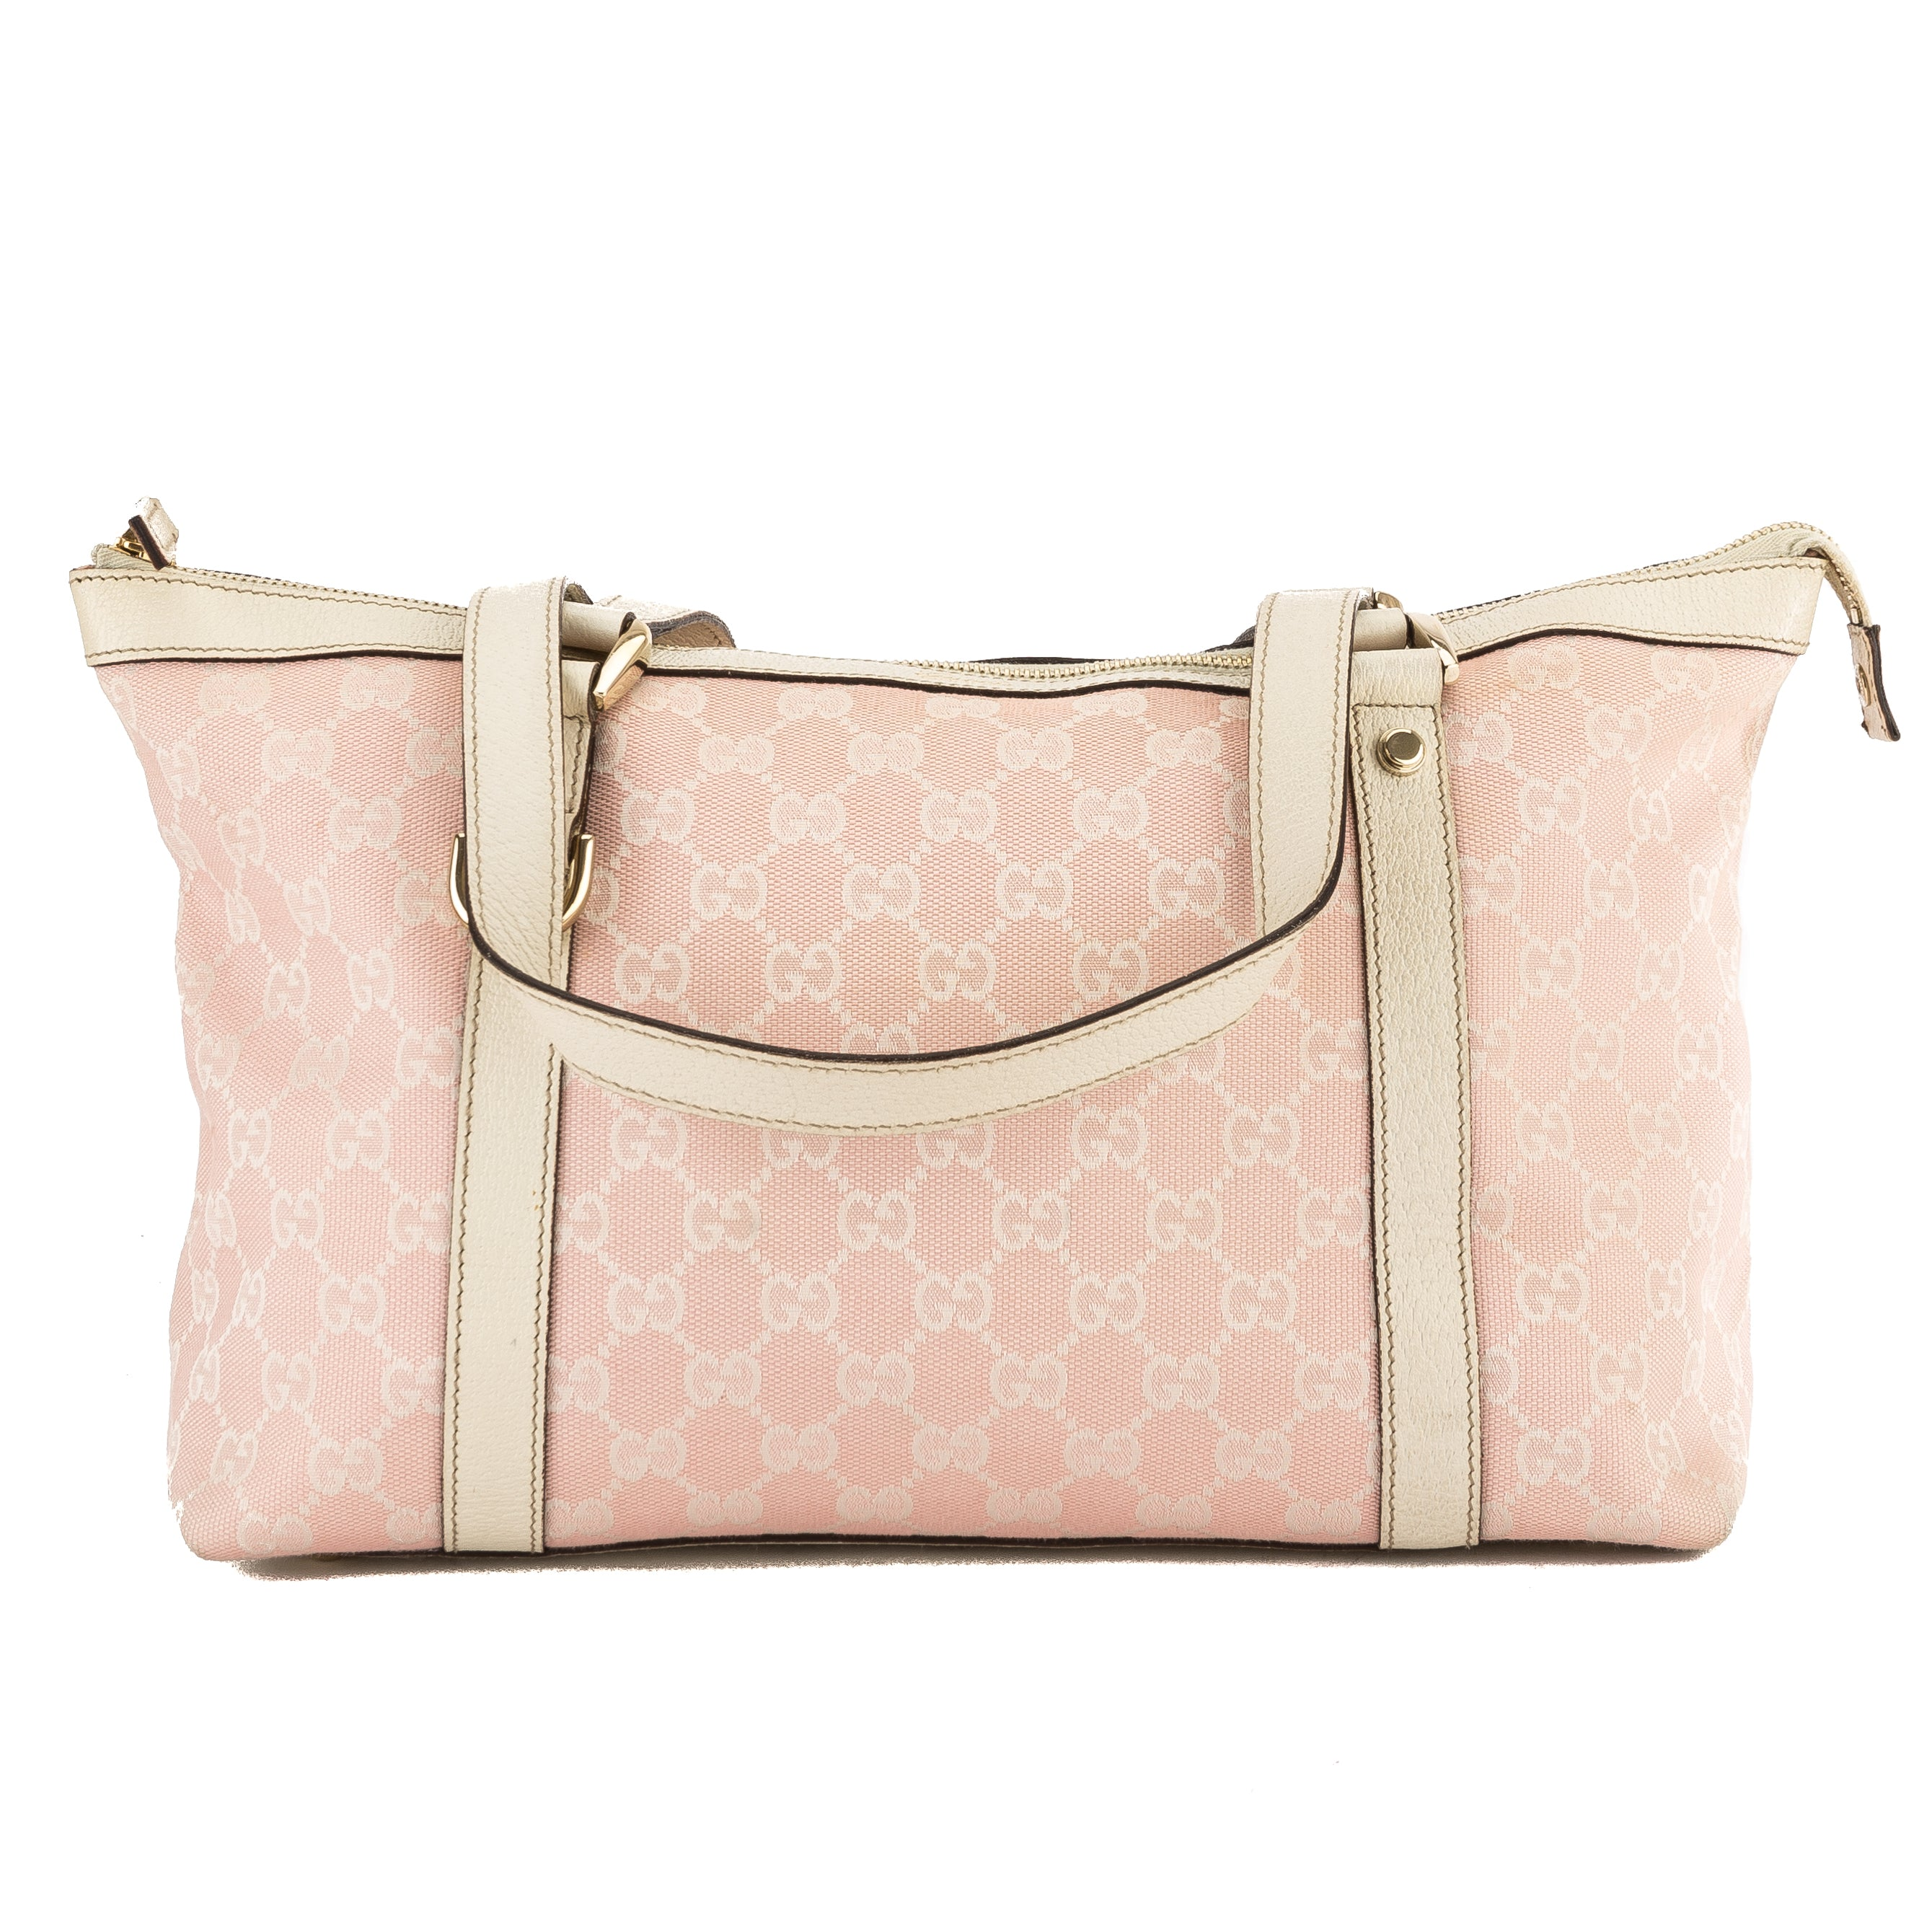 08491347db8a Gucci Pink and White GG Monogram Canvas Medium Abbey Tote Bag Pre Owned